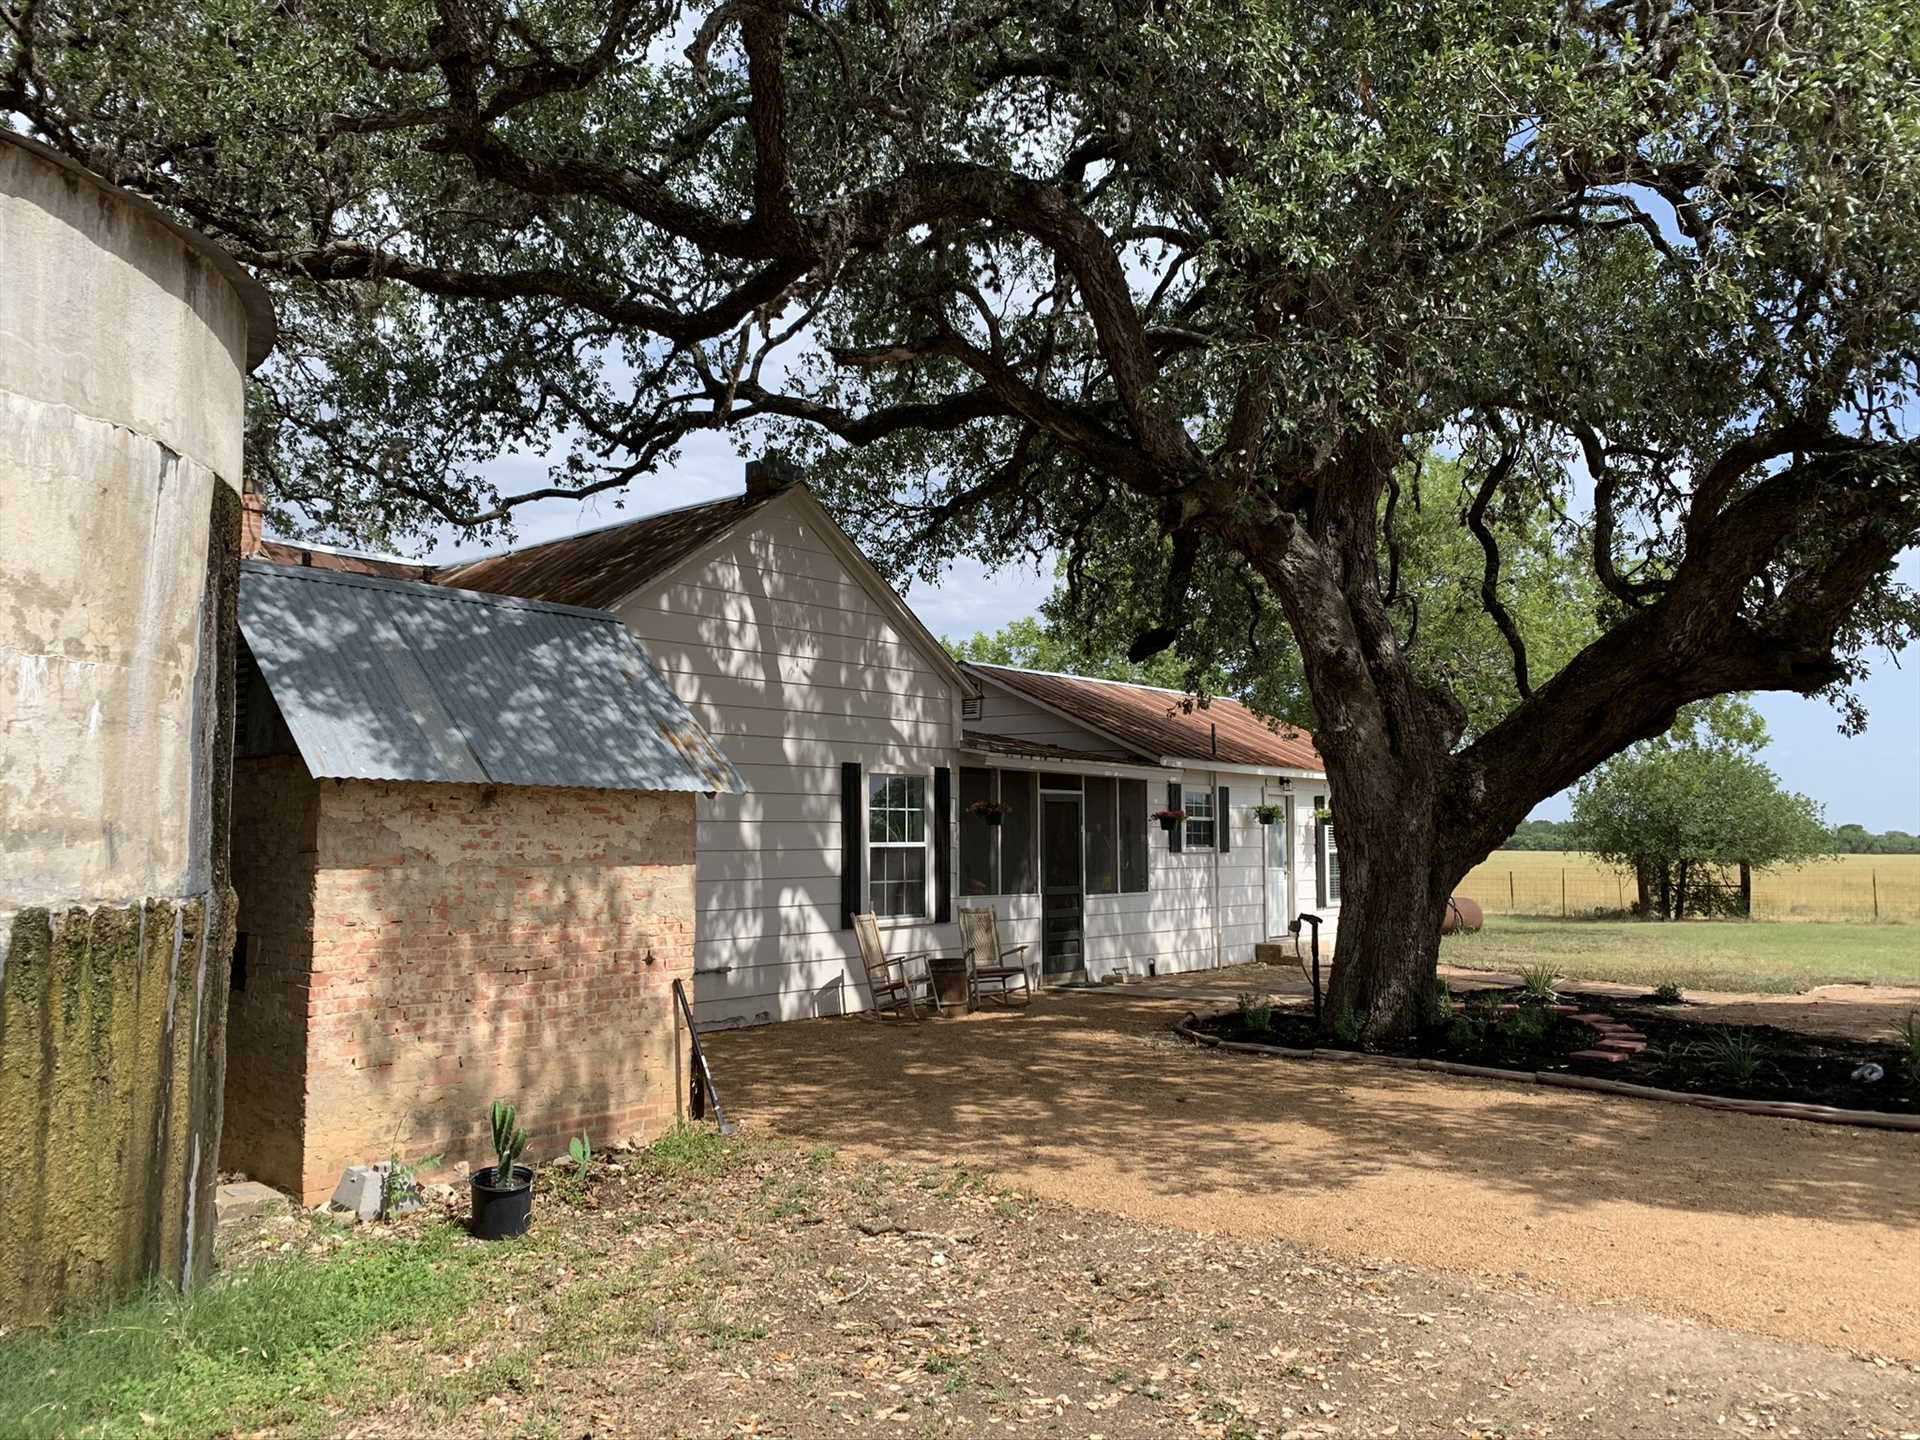 Generations of Texans have enjoyed the shady peace of the Retreat. It's your turn!